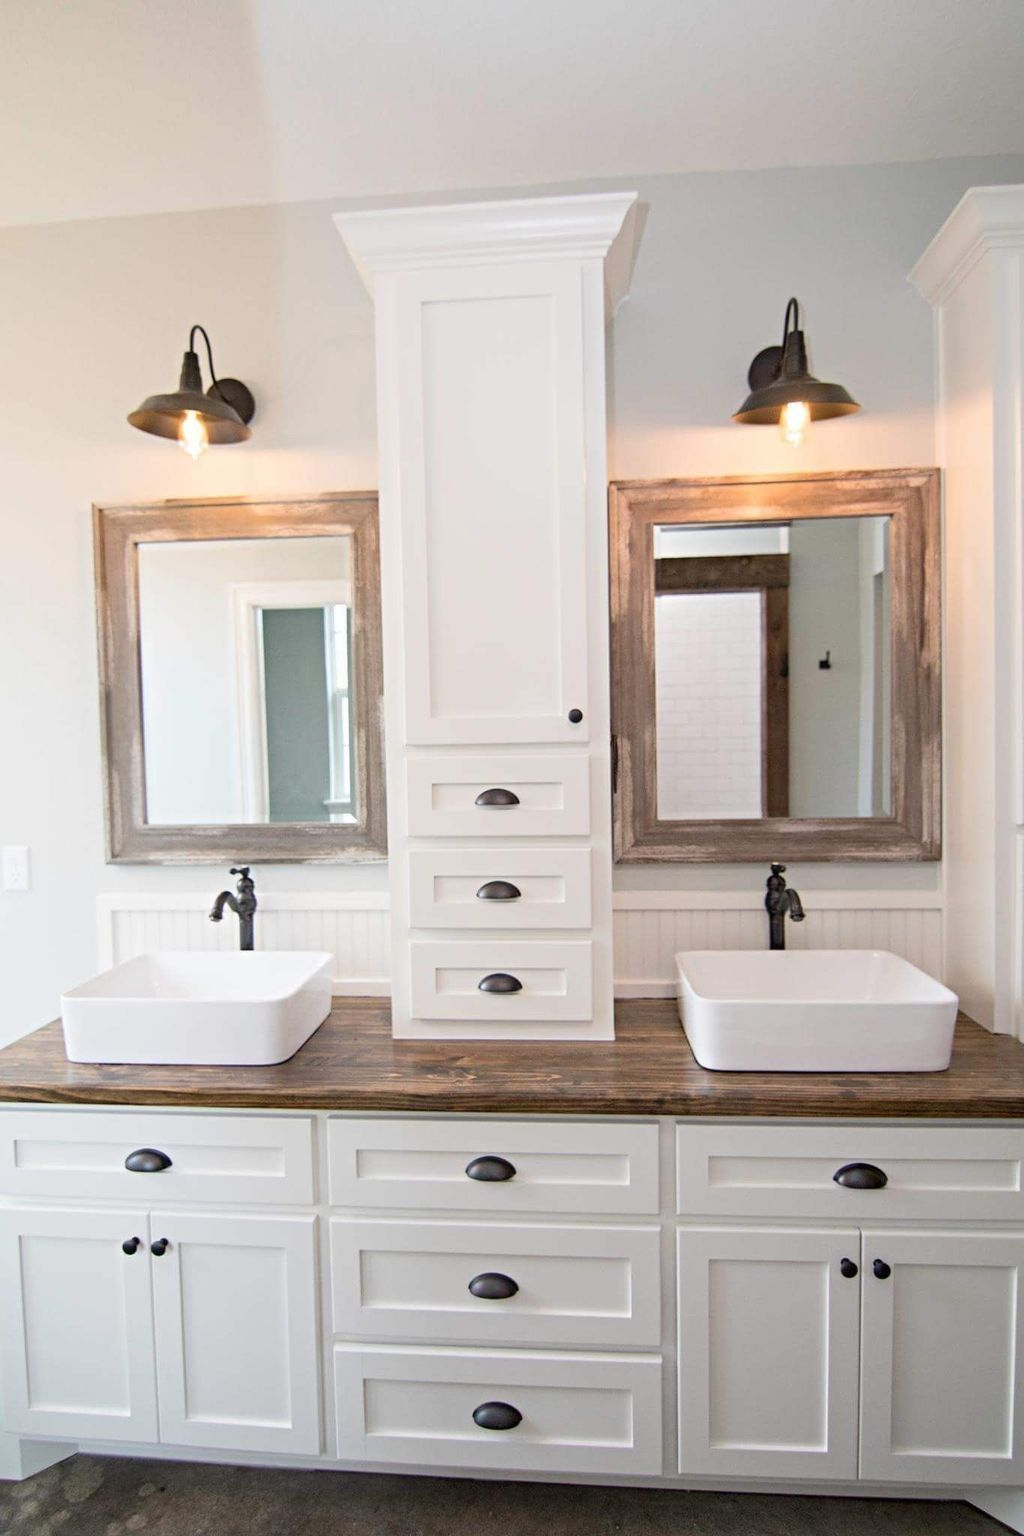 30+ Awesome Master Bathroom Remodel Ideas On A Budget - decordiyhome.com/last #bathroomrenoideas